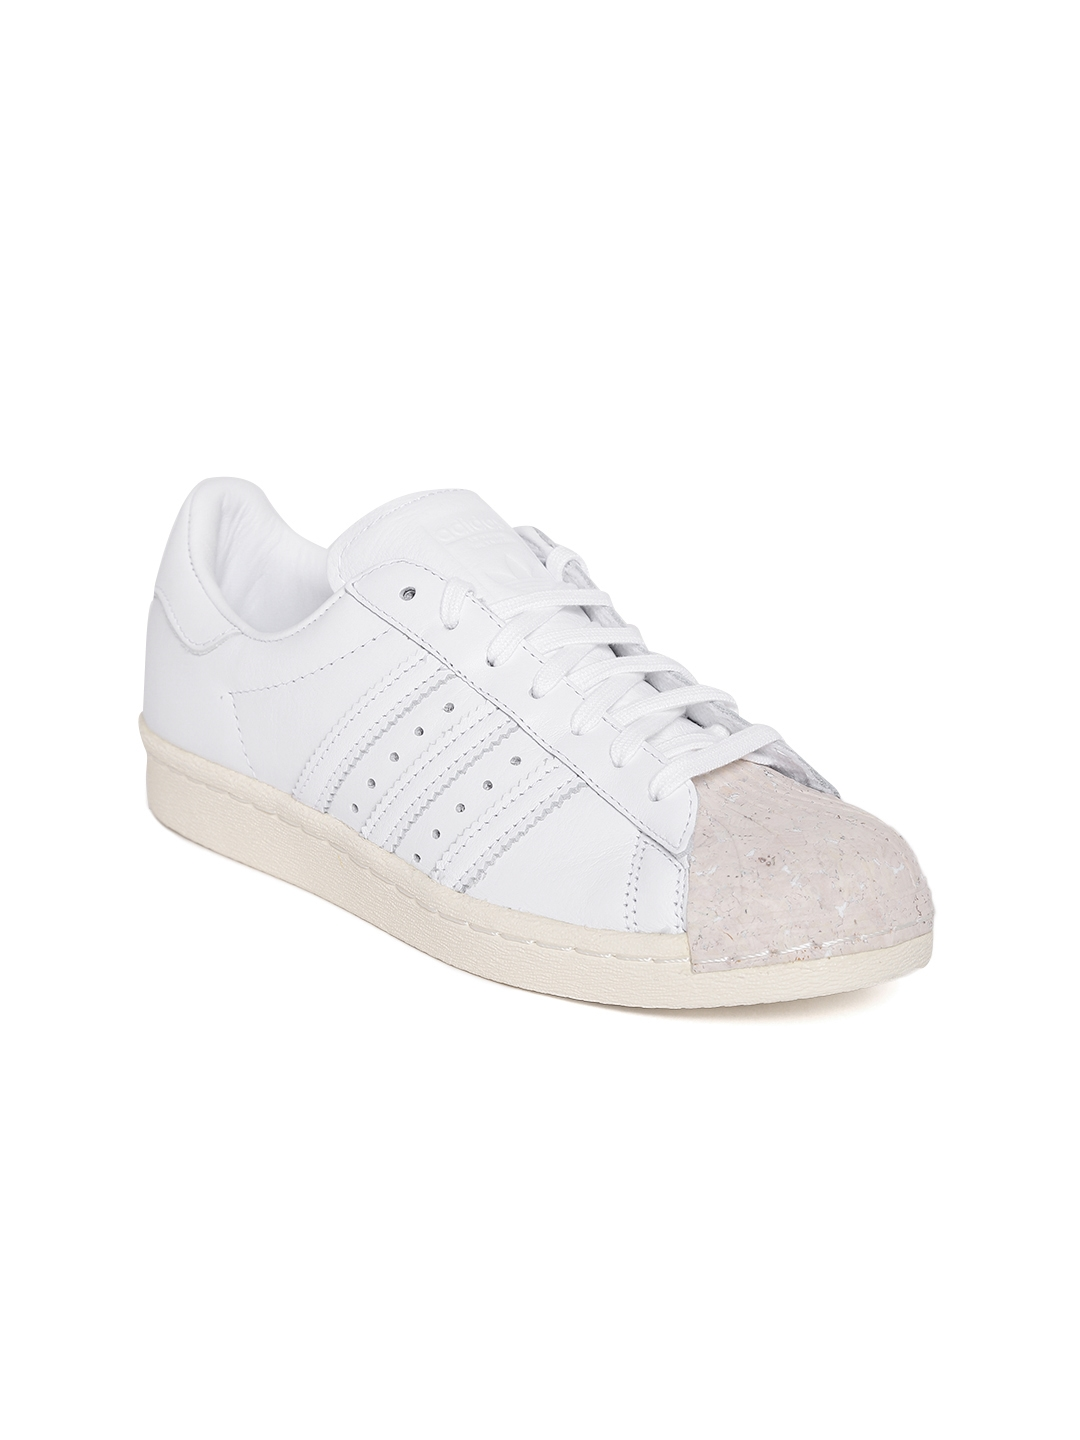 cheaper ccac0 6dd76 adidas womens shoes superstar 80s cork